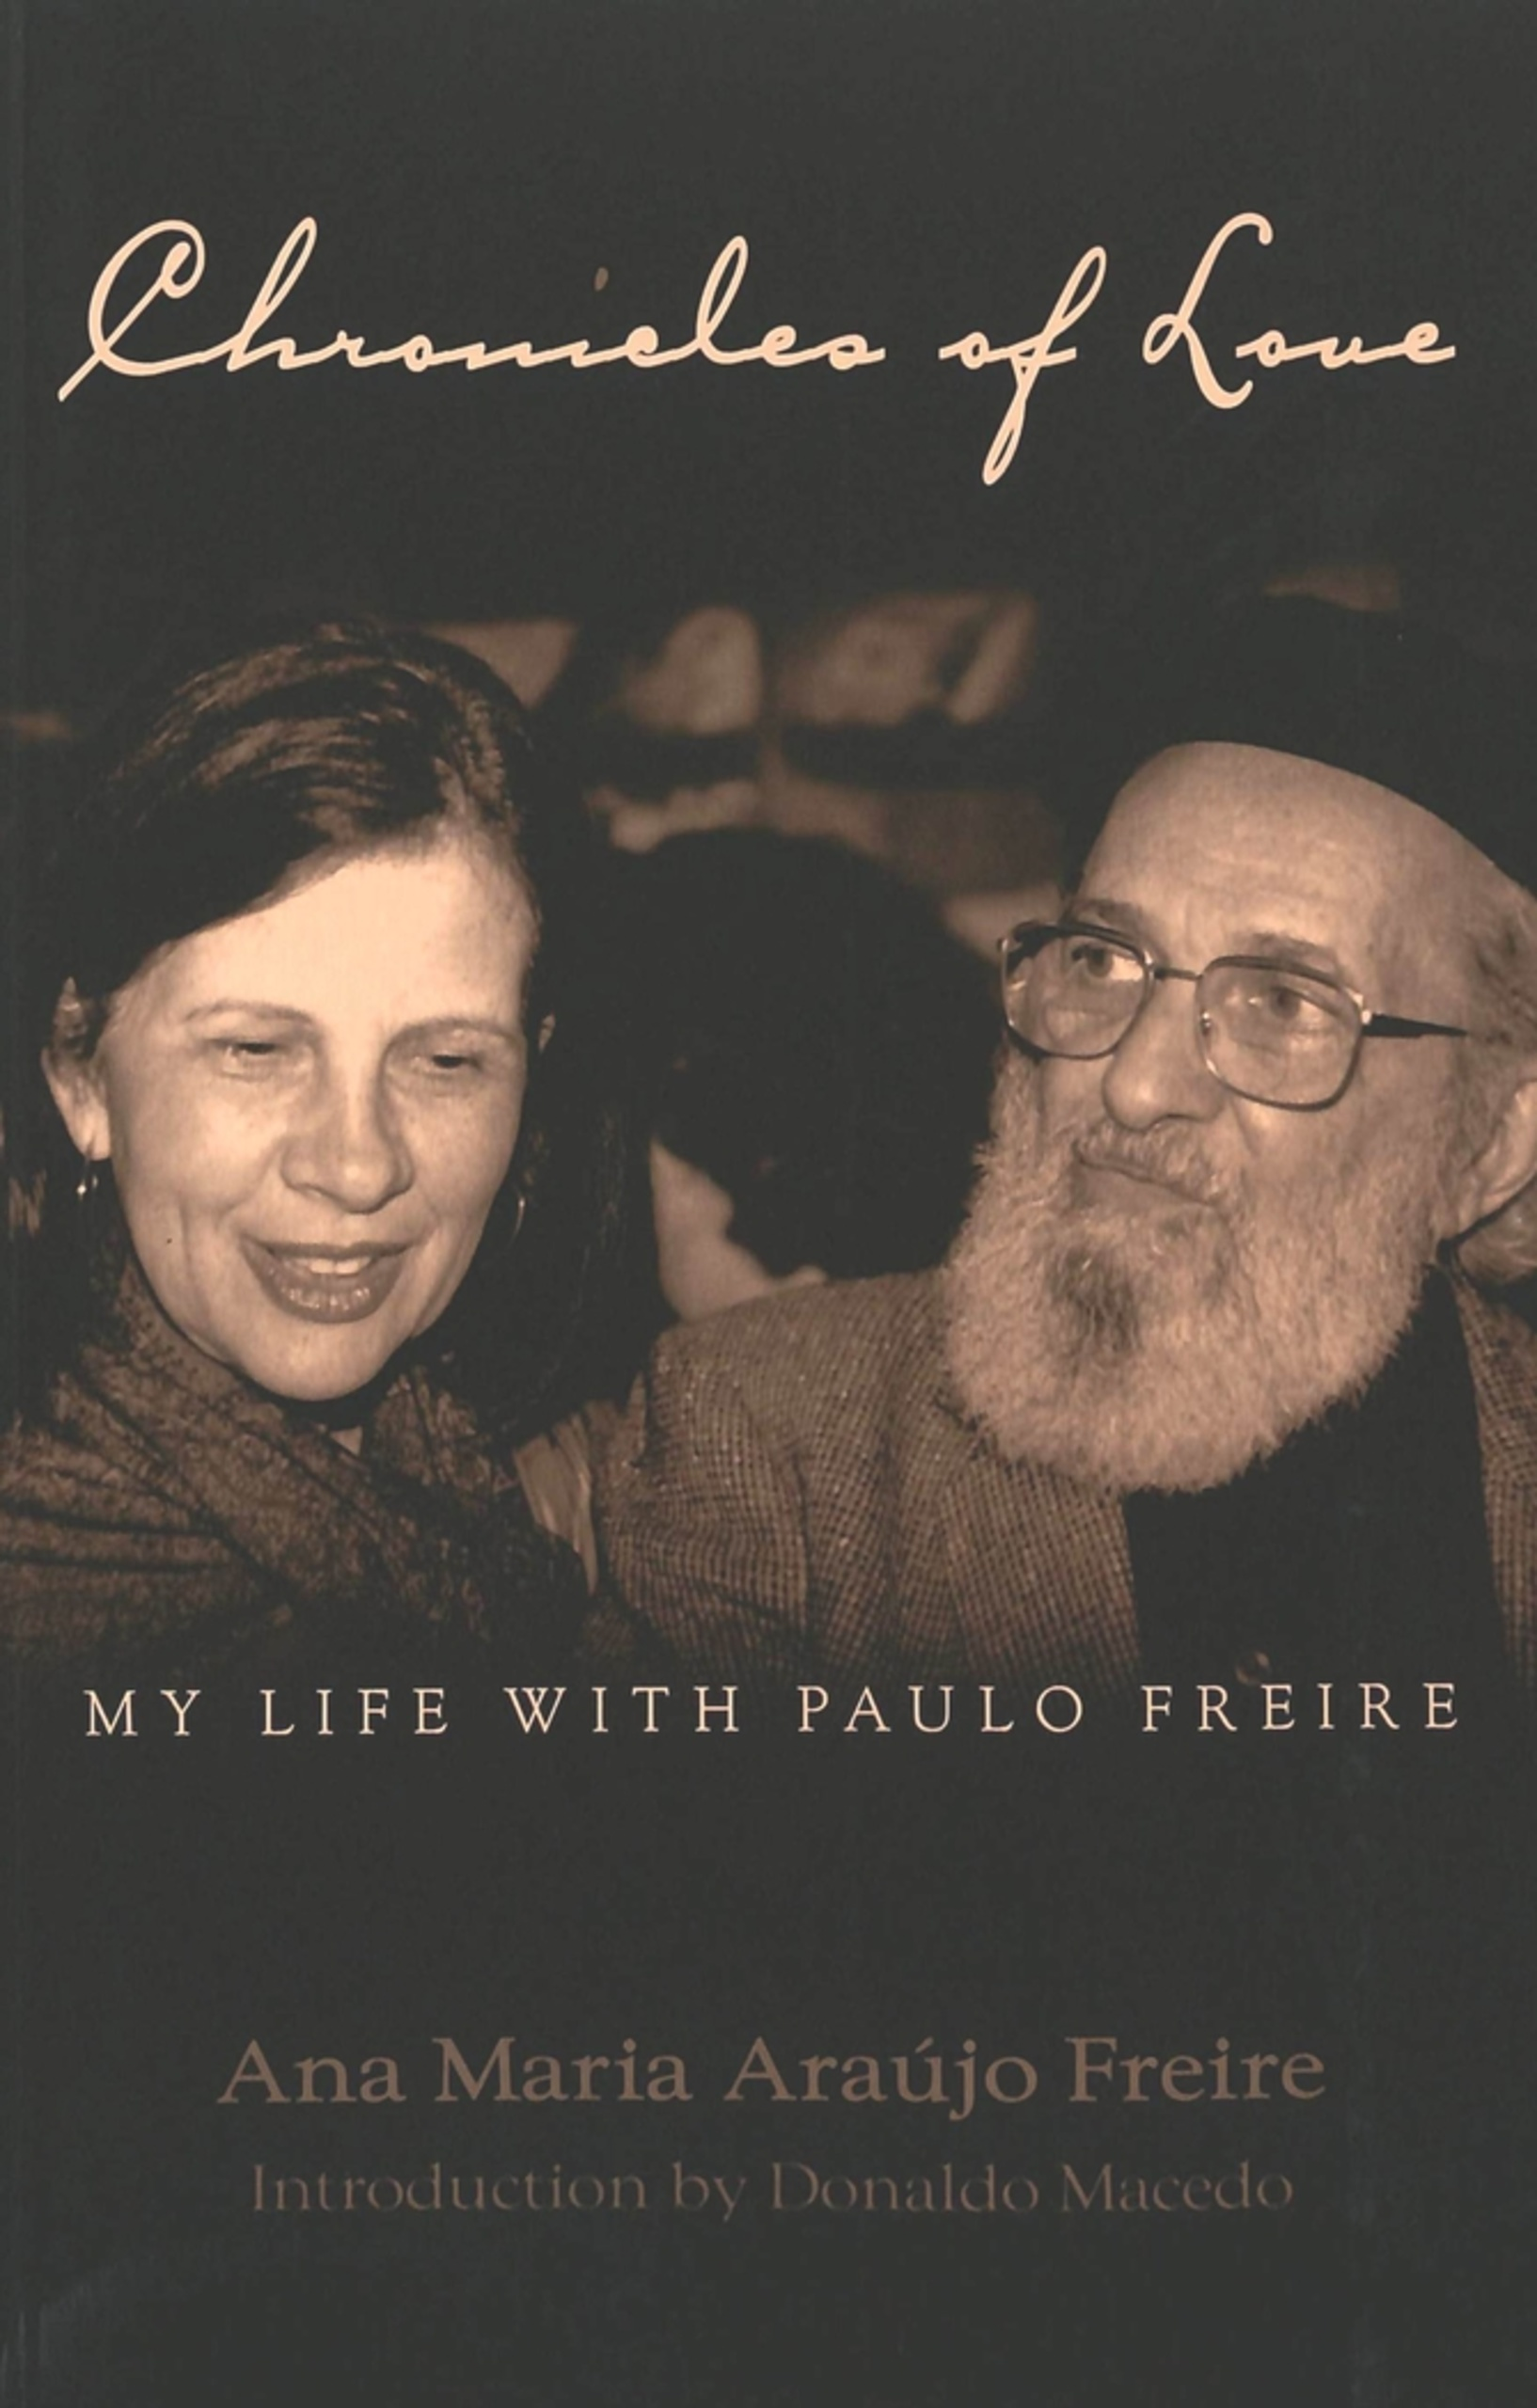 Title: Chronicles of Love: My Life with Paulo Freire